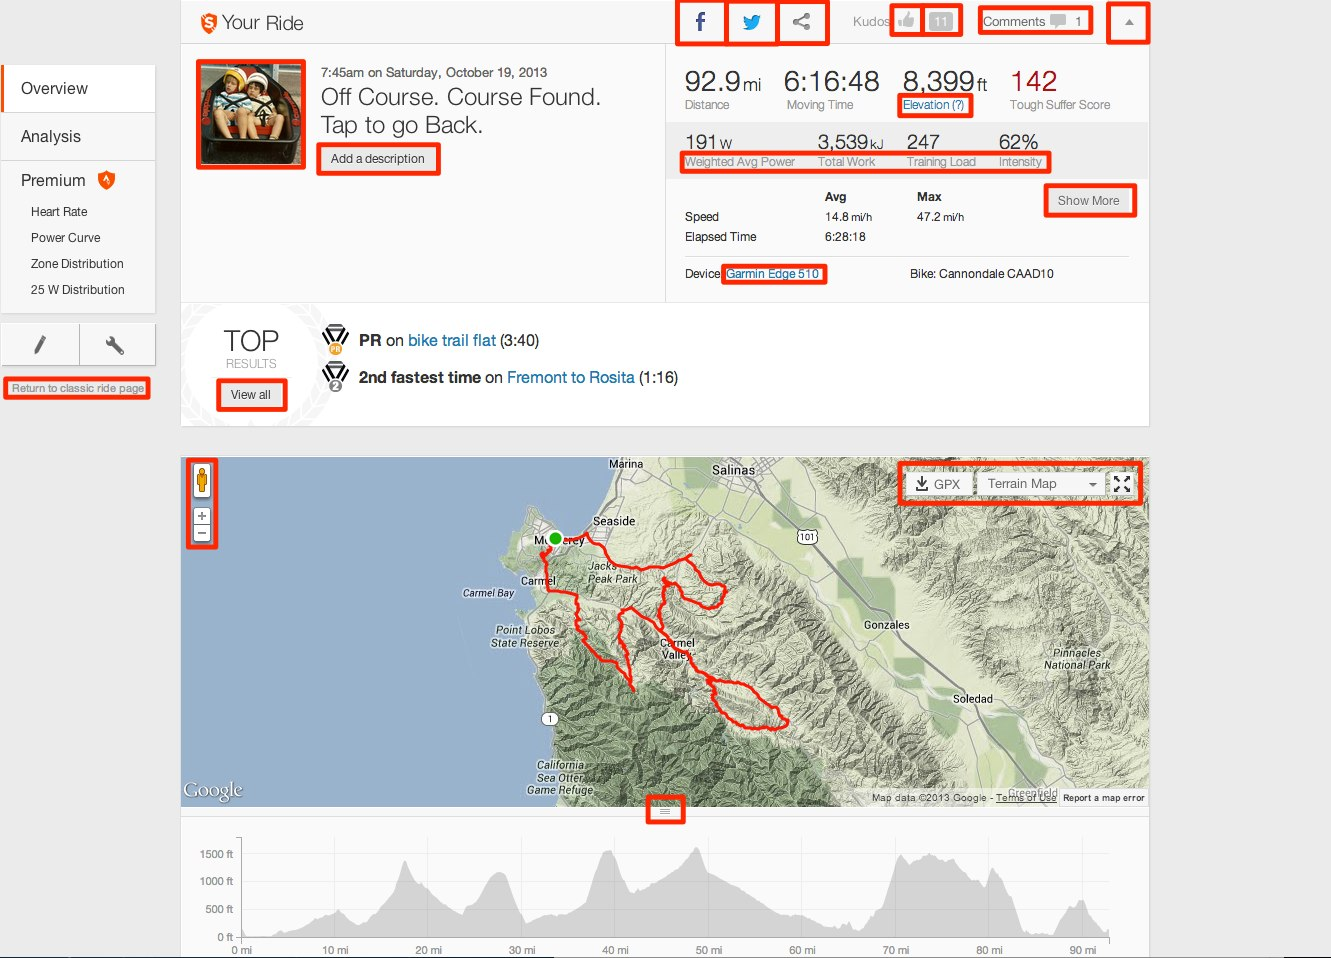 Off_Course._Course_Found._Tap_to_go_Back.___Strava_Ride.jpg